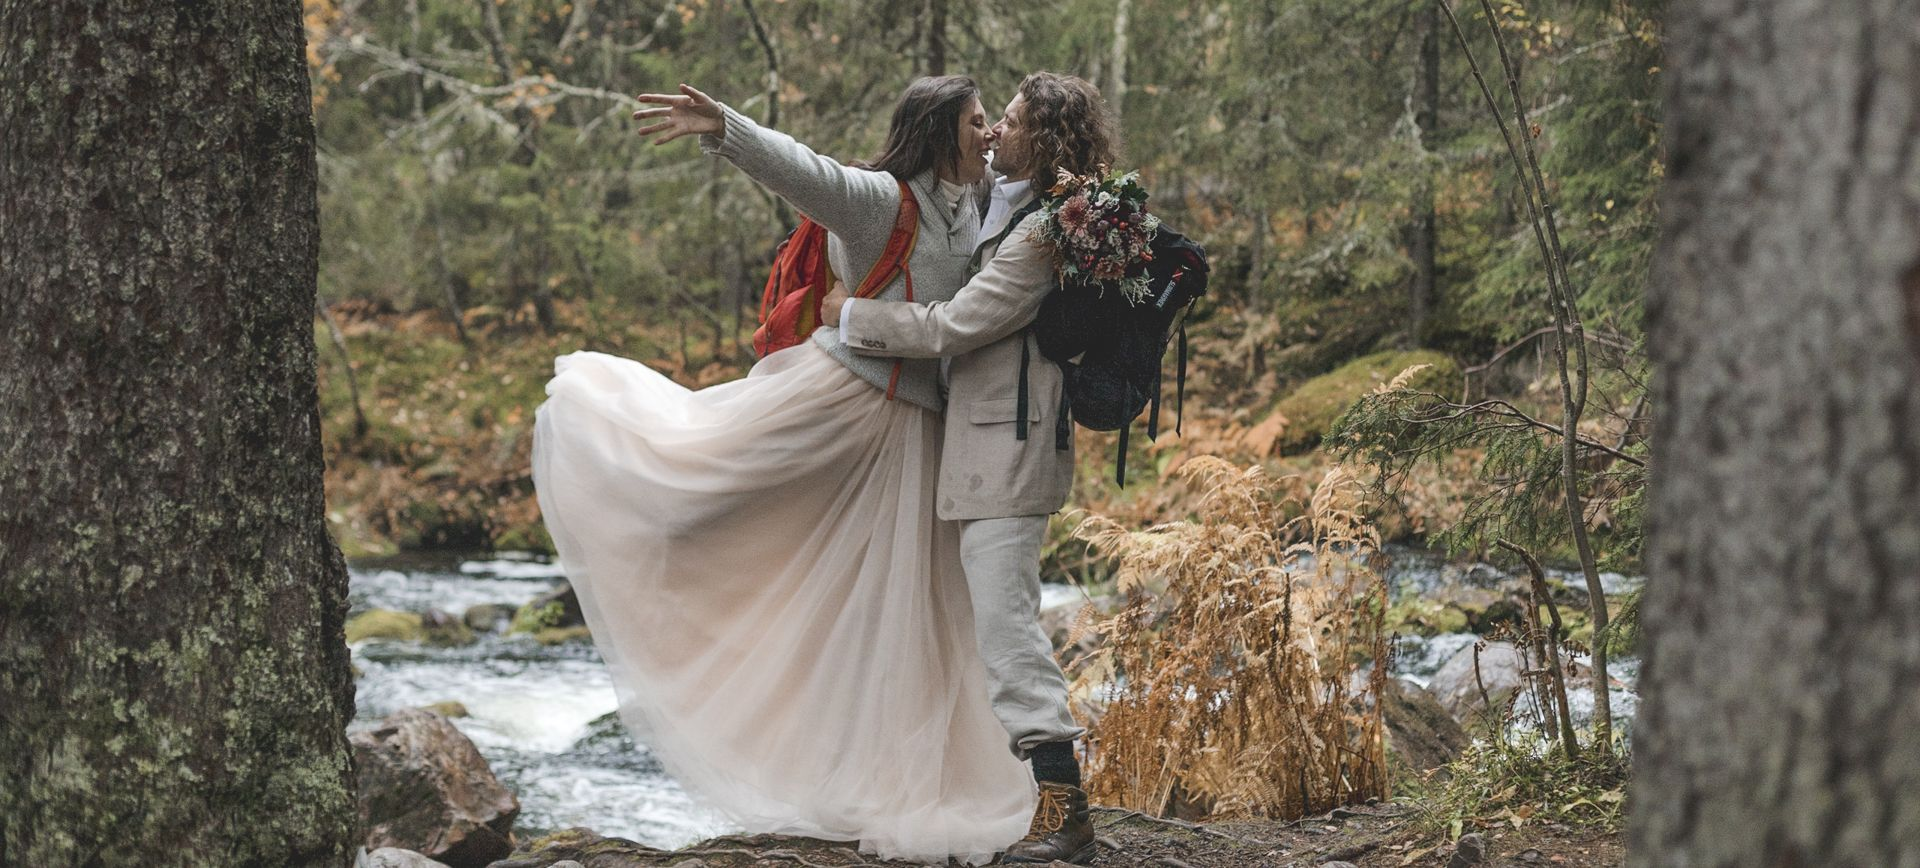 glamping wedding package - get married at a waterfall in sweden